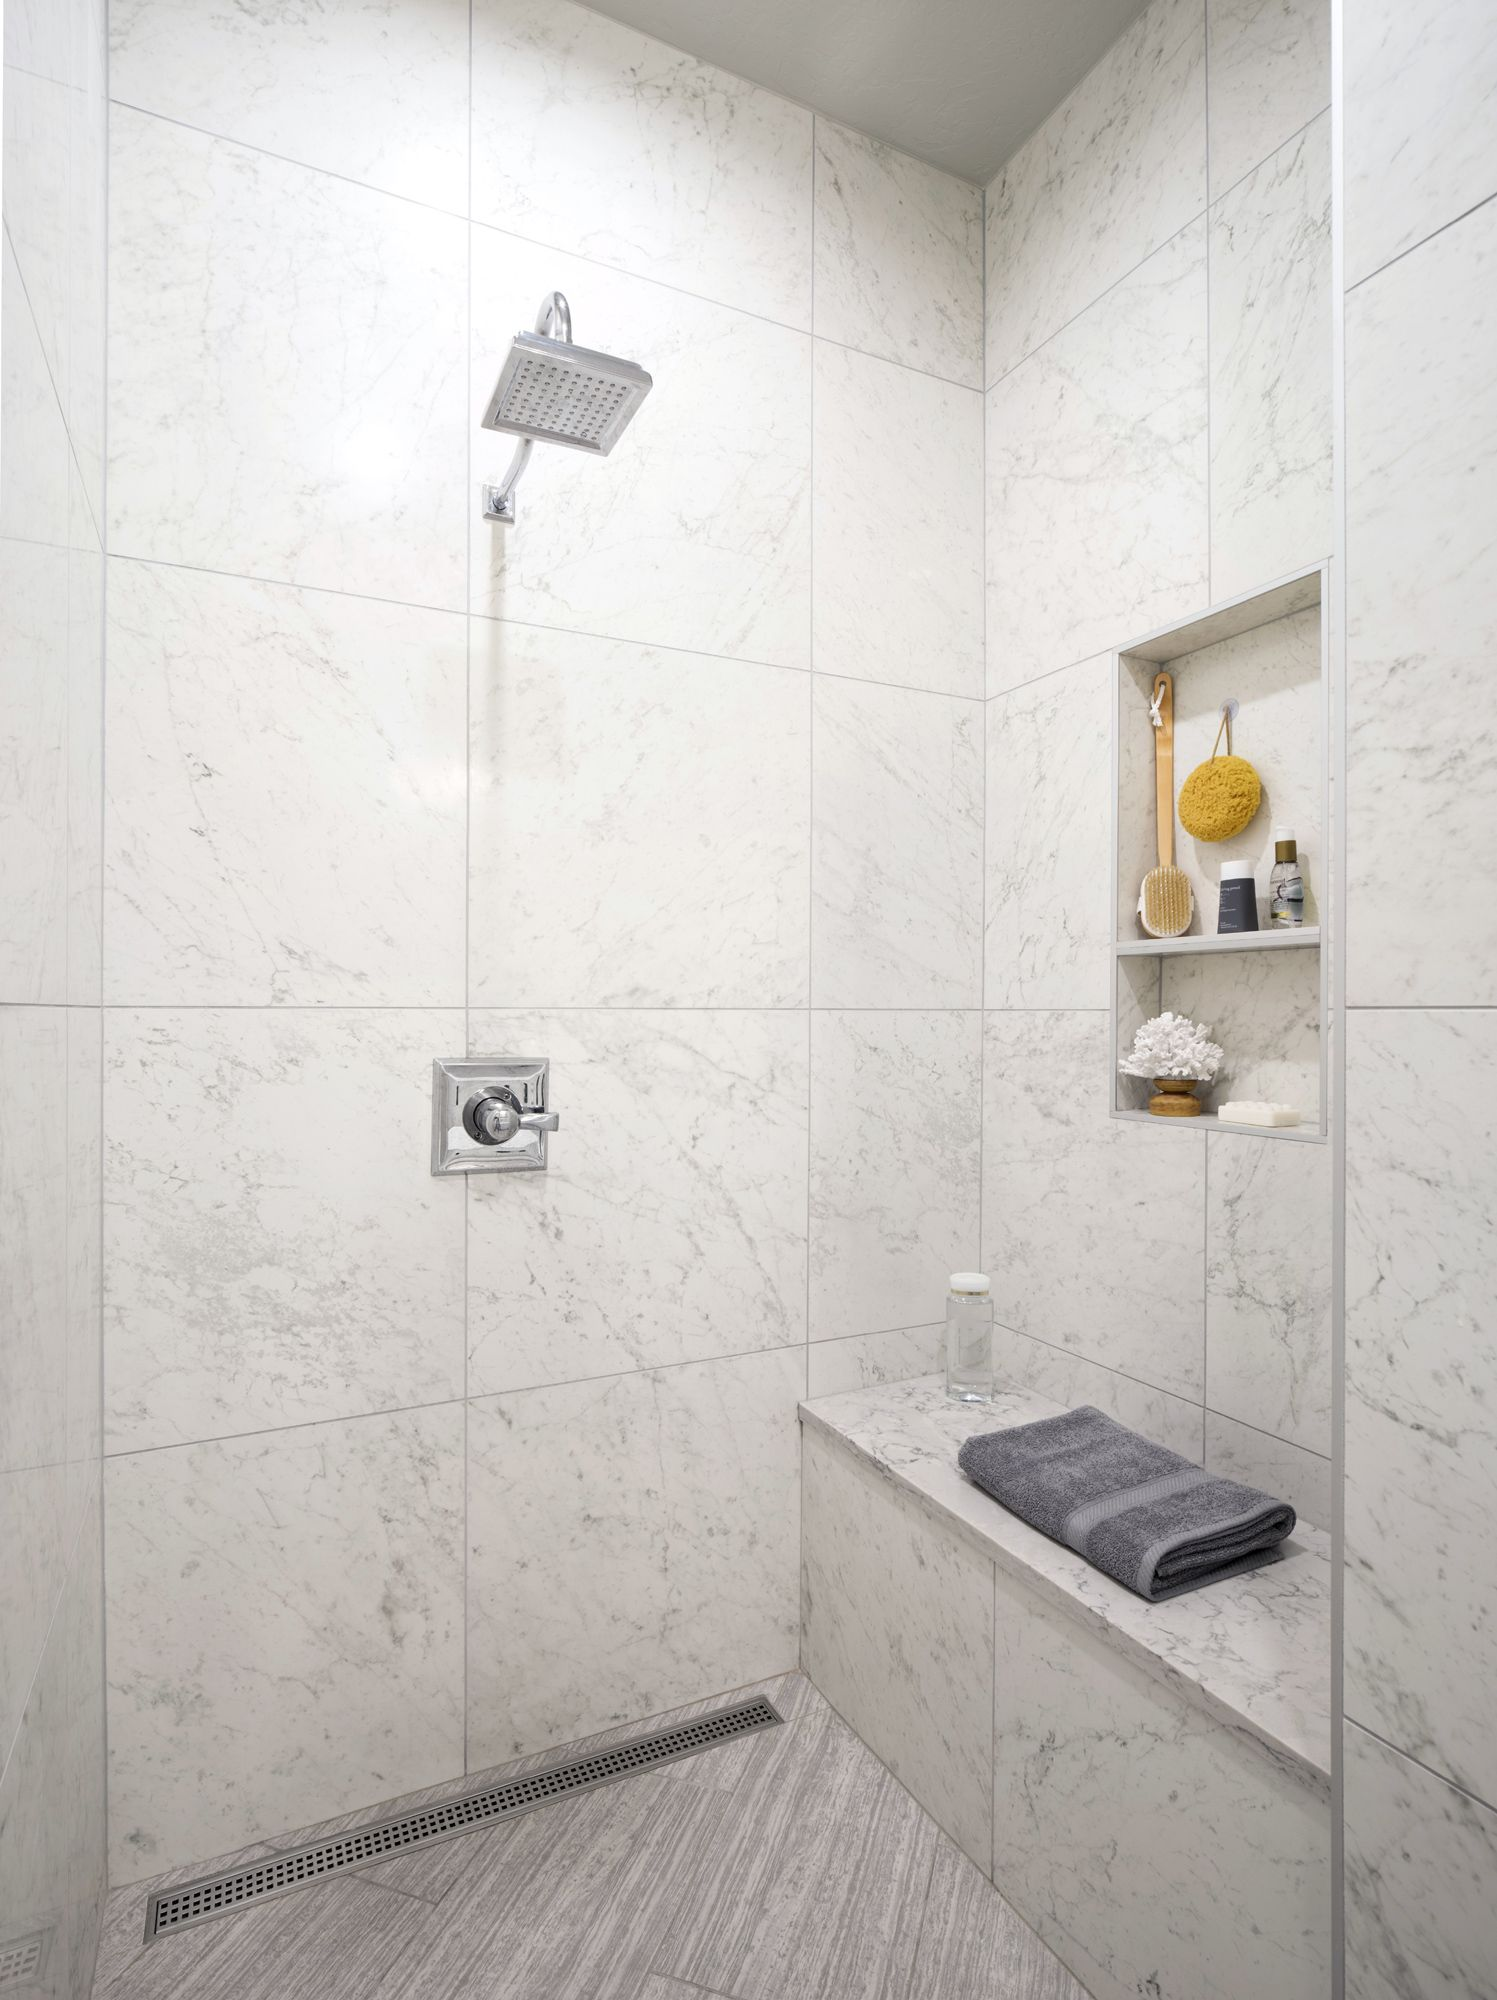 This Curbless Shower Was Created With Faux Marble Porcelain Tiles On The Walls And Floor Continues Out Into Bath Where We Placed A Beautiful